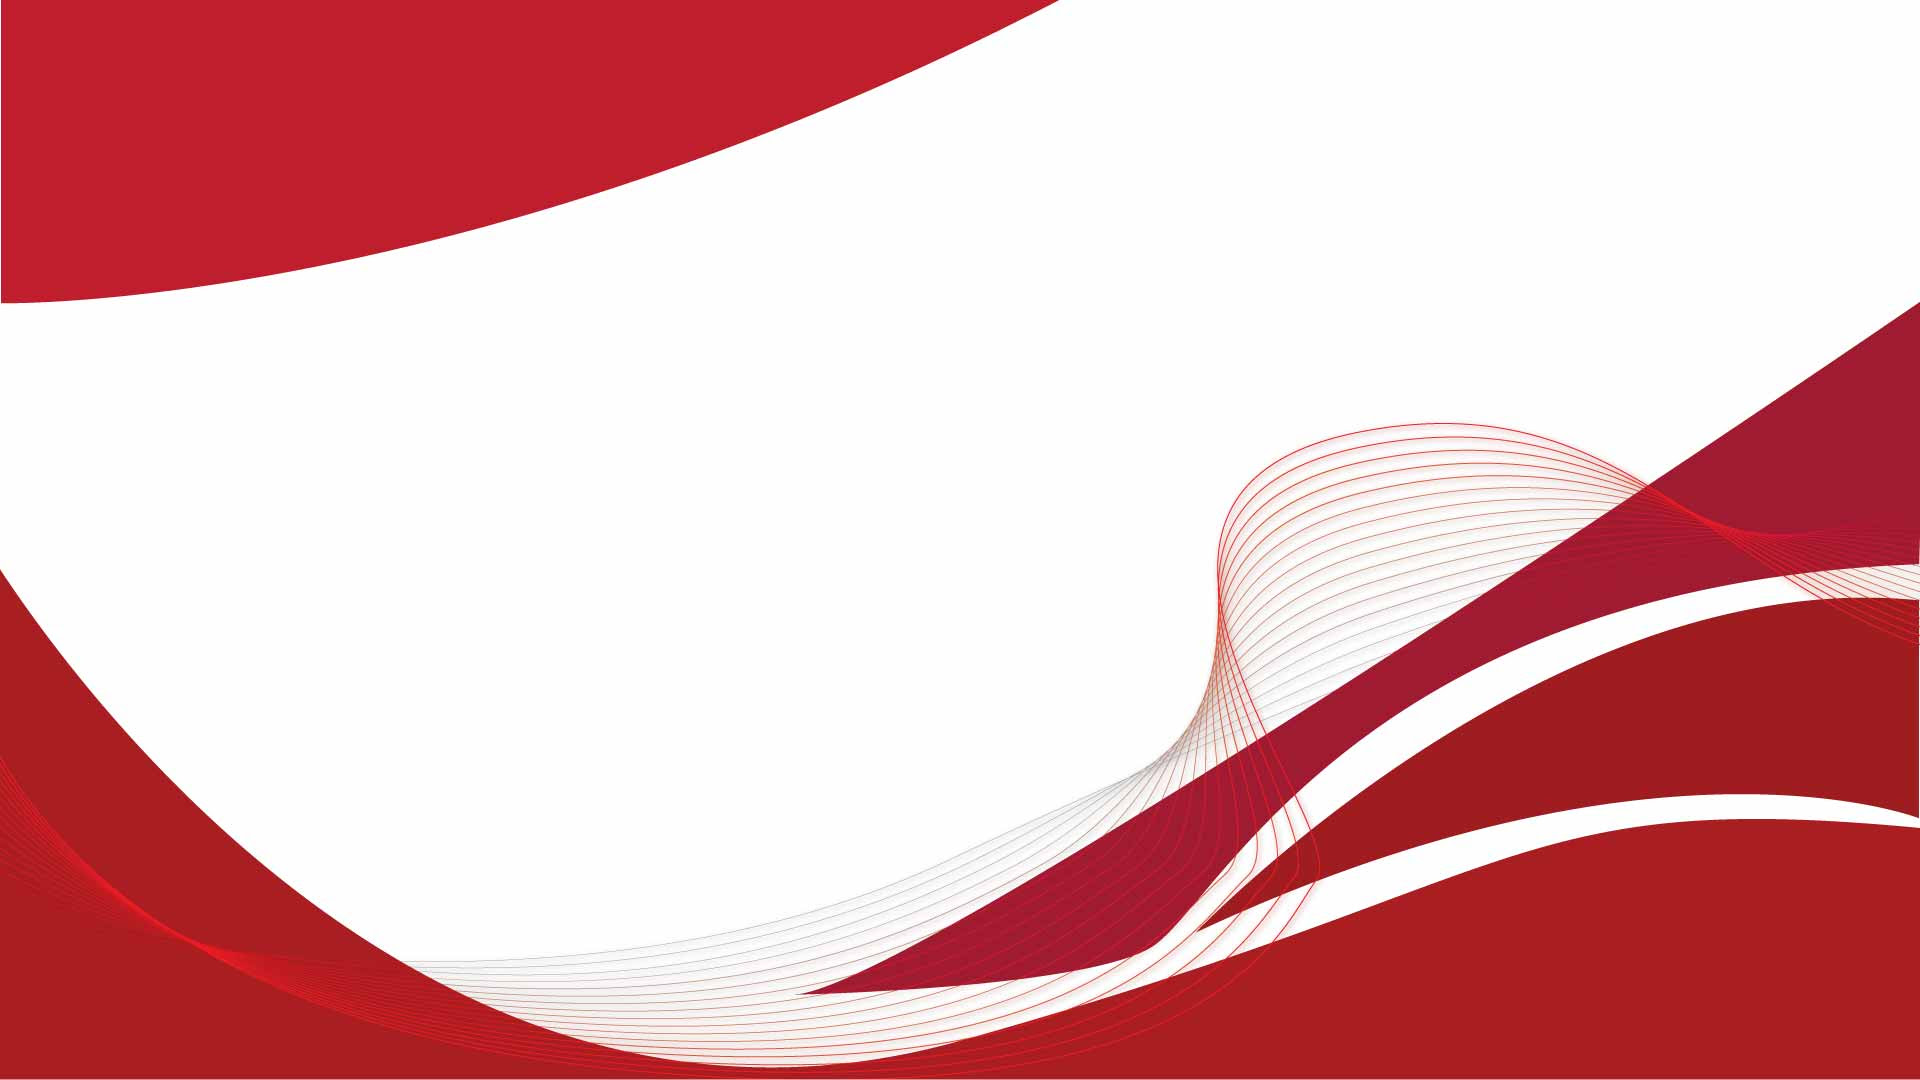 Red Vector Background For Template Design: 1000+ Free Download Vector,  Image, PNG, PSD Files